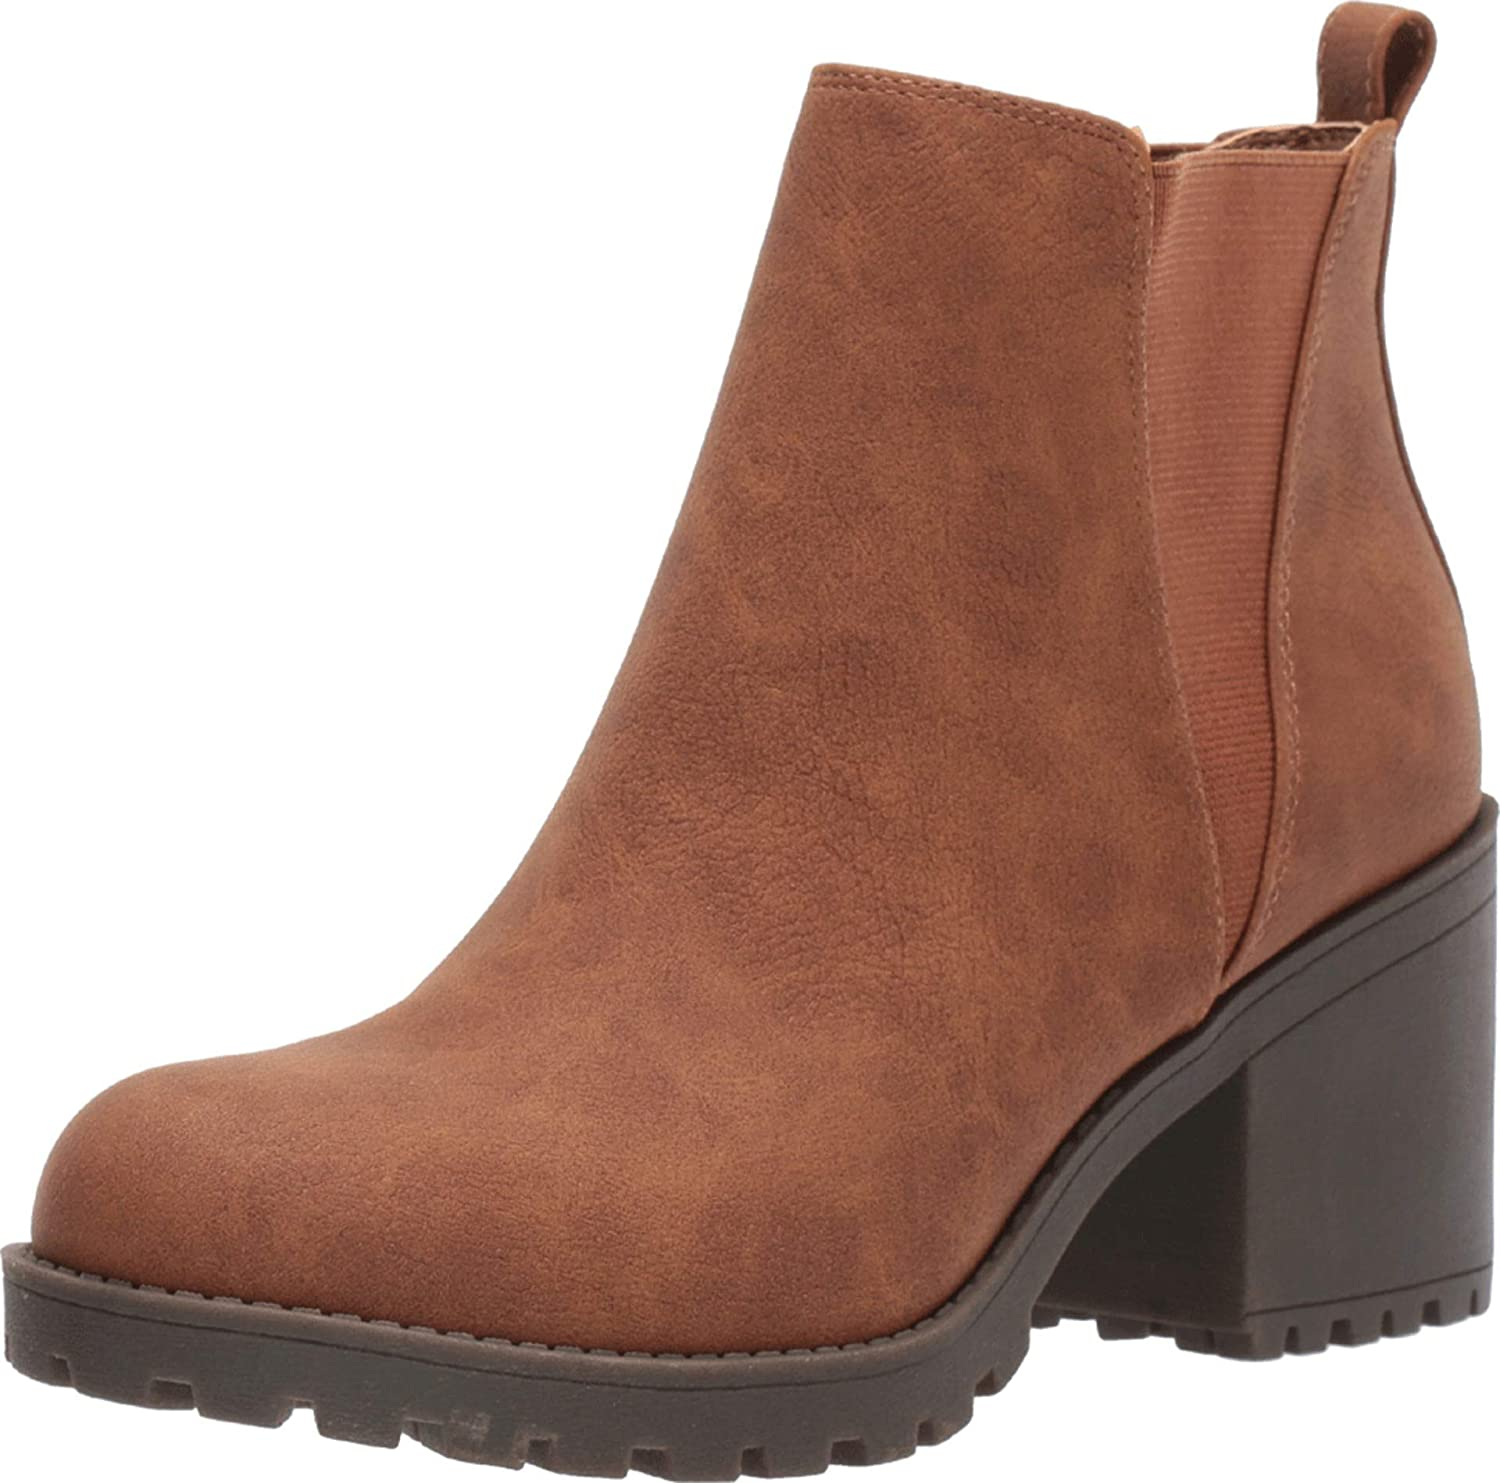 Dirty Laundry Women's Lisbon Ankle Boot